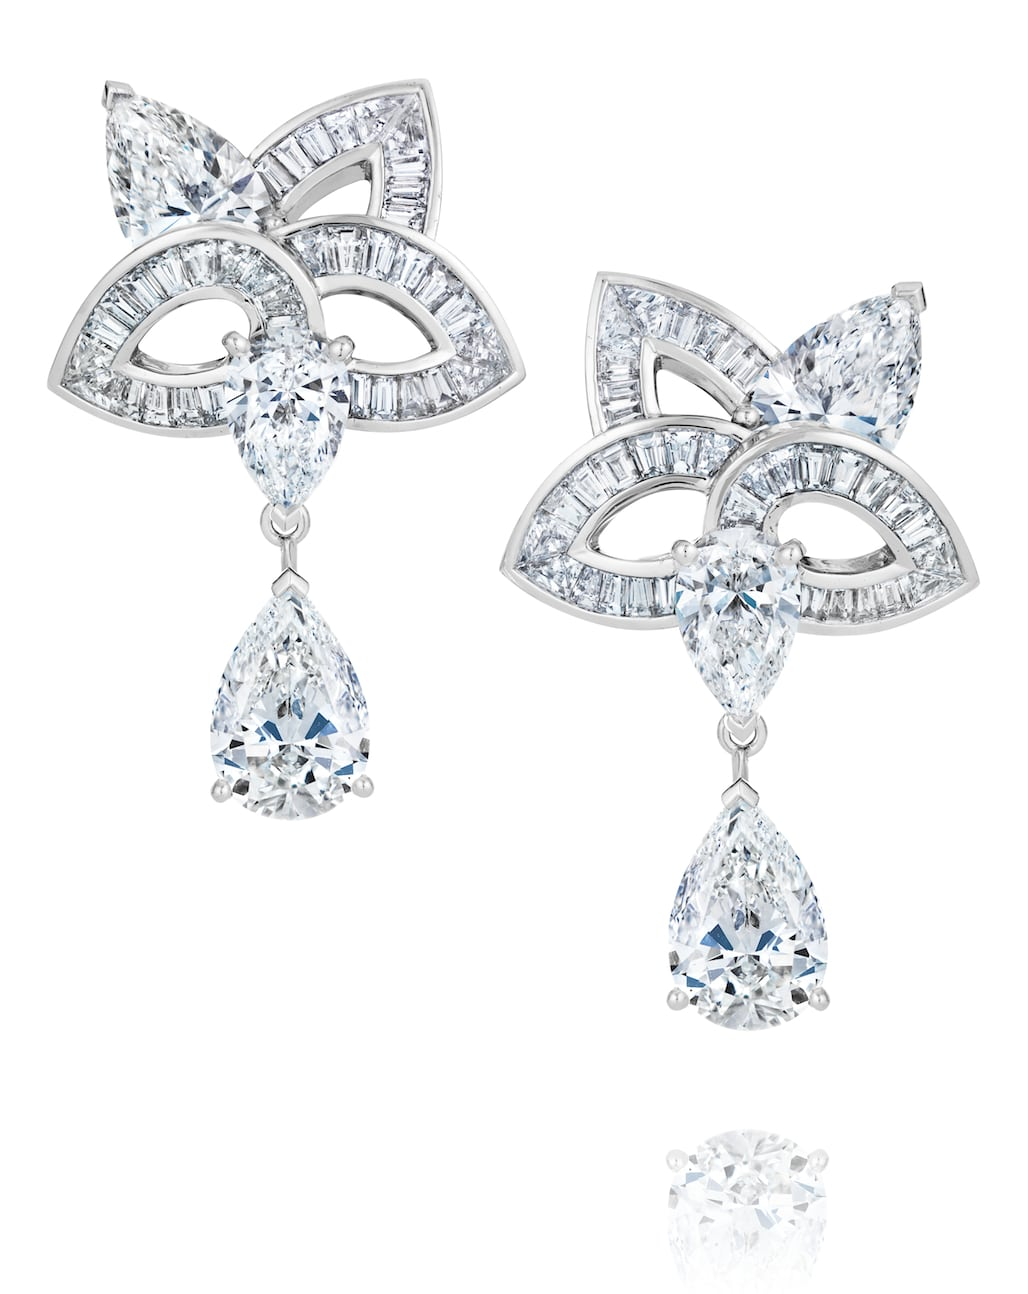 De-Beers-BLOOMING-LOTUS-HIGH-JEWELLERY-EARRINGS